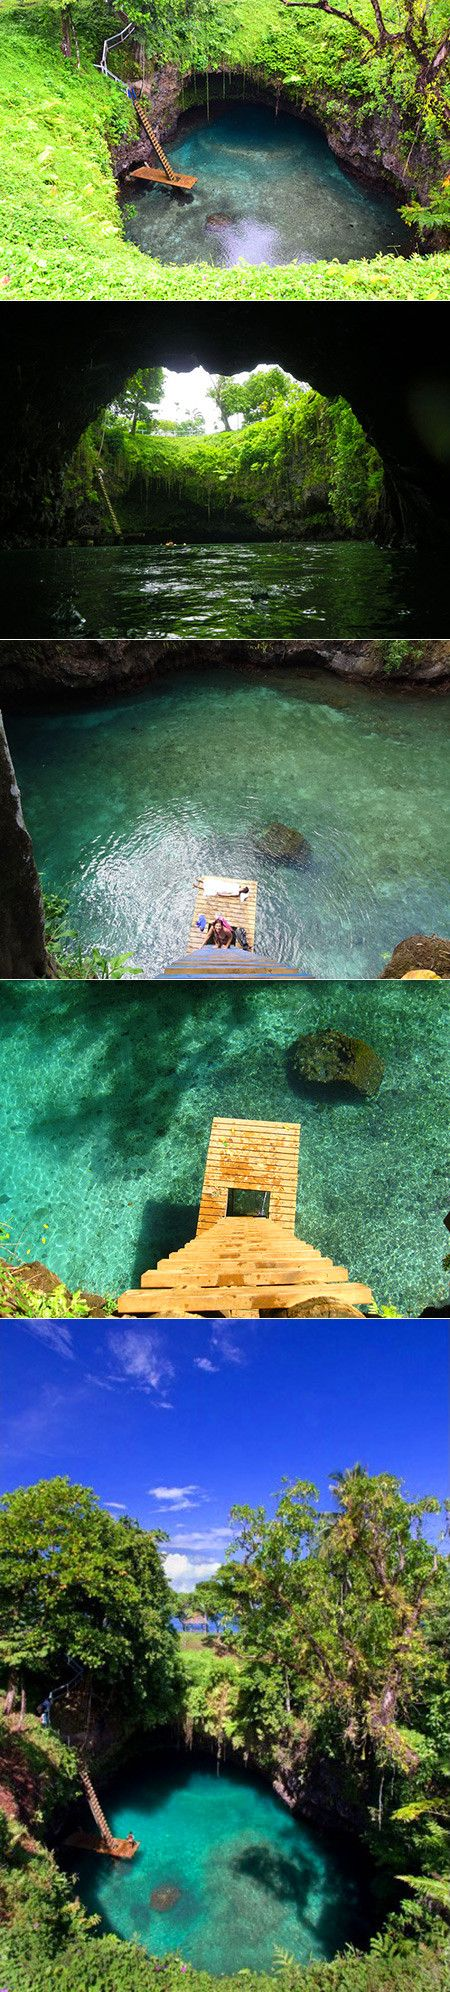 Located in the village of Lotofaga (population: 1,089) on the south coast of Upolu island in Samoa, is the To Sua Ocean Trench. An all-natural swimming hole with a large ladder and small dock, visitors can pay a fee ($15 for adults, $6 for children 7-15, free for kids under 7) to access the 30 meter (98 ft) deep hole. The island of Upolu was formed by a massive basaltic shield volcano.